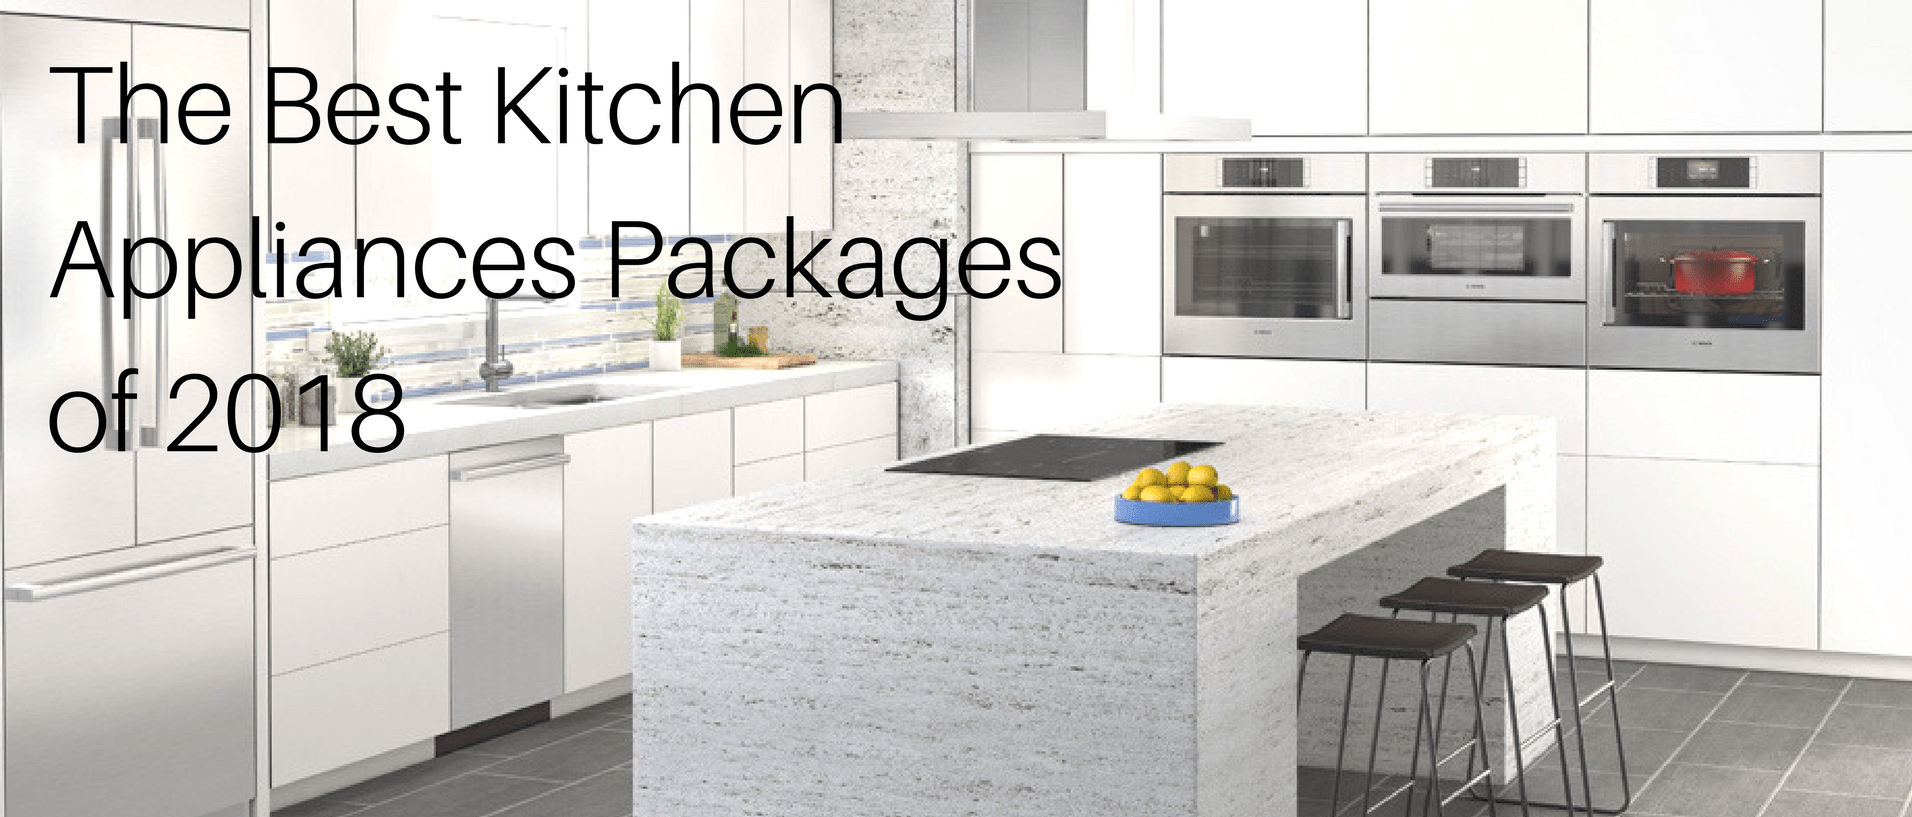 The Best Kitchen Appliances Packages Of 2018 Appliances Connection